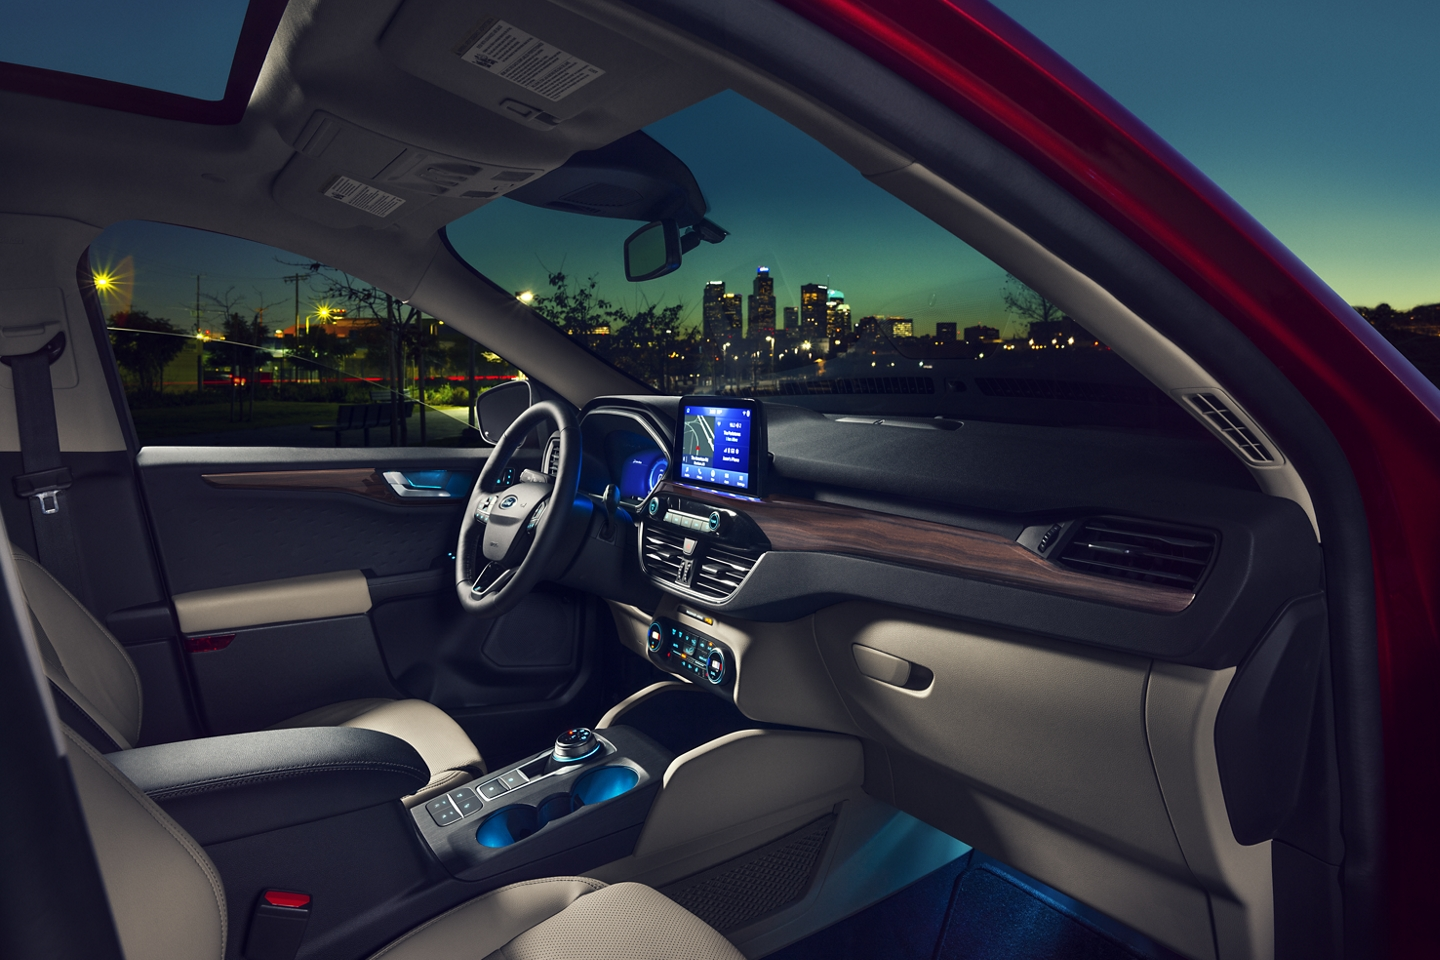 Ford Escape 2020 interieur